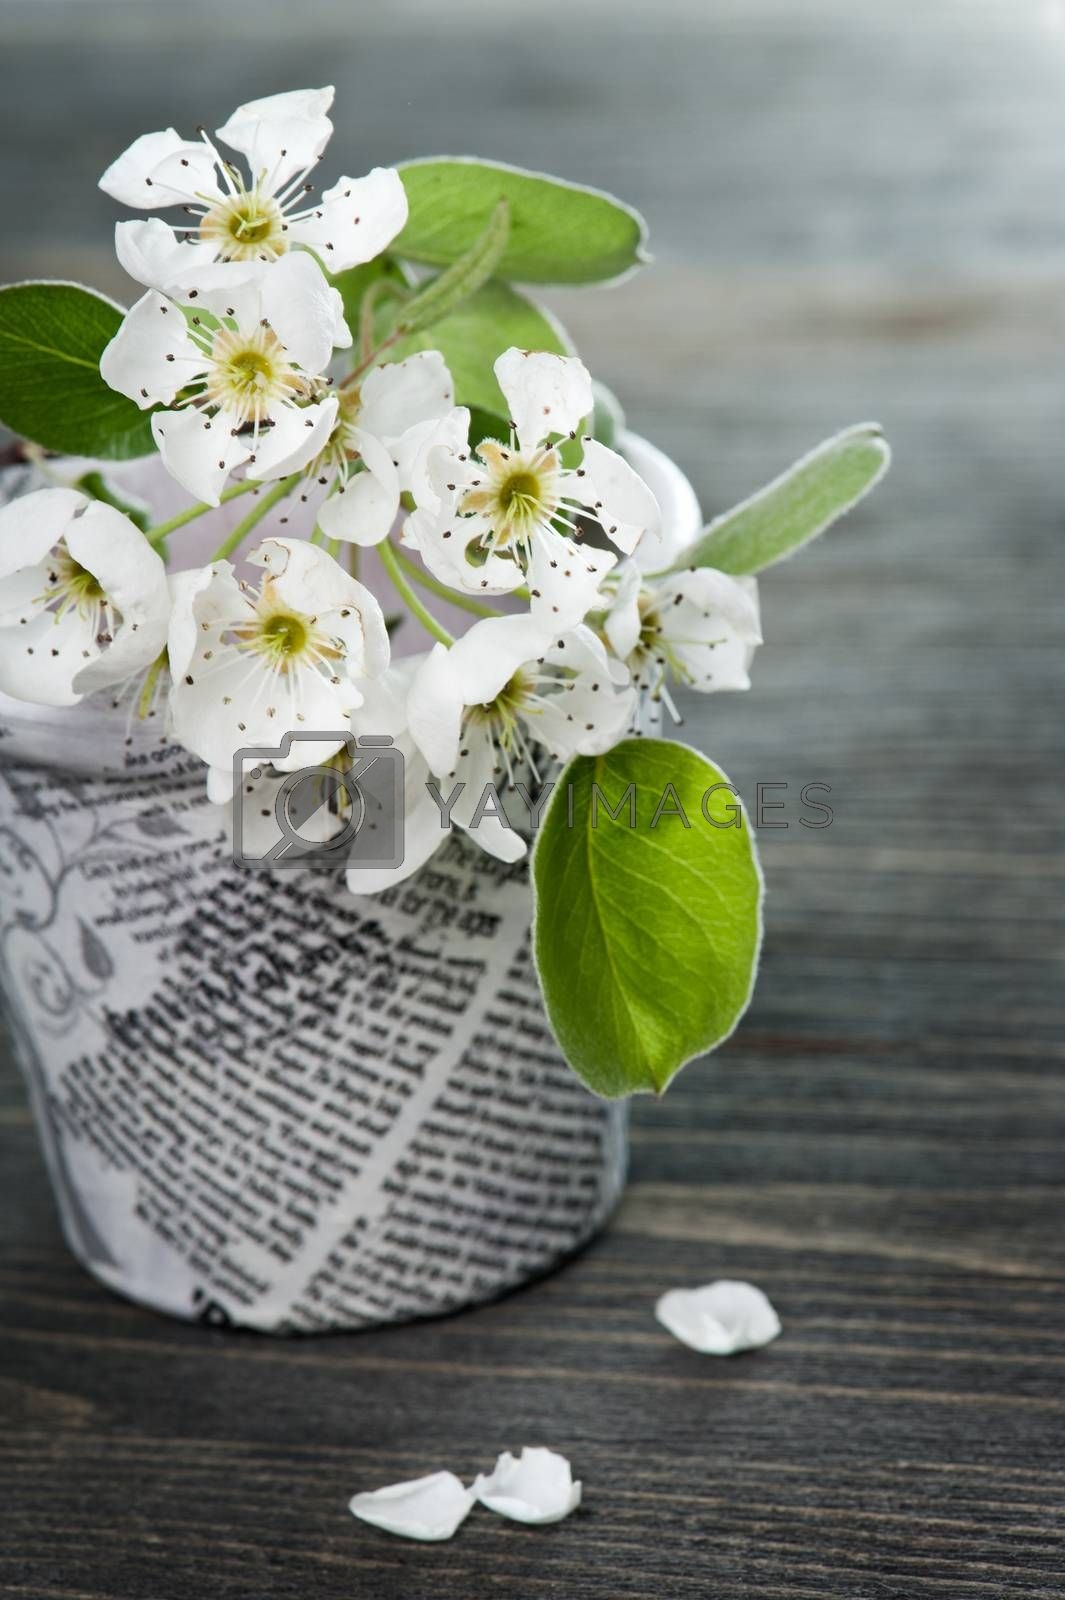 Cherry blossom and petals in a news paper on a dark wooden background